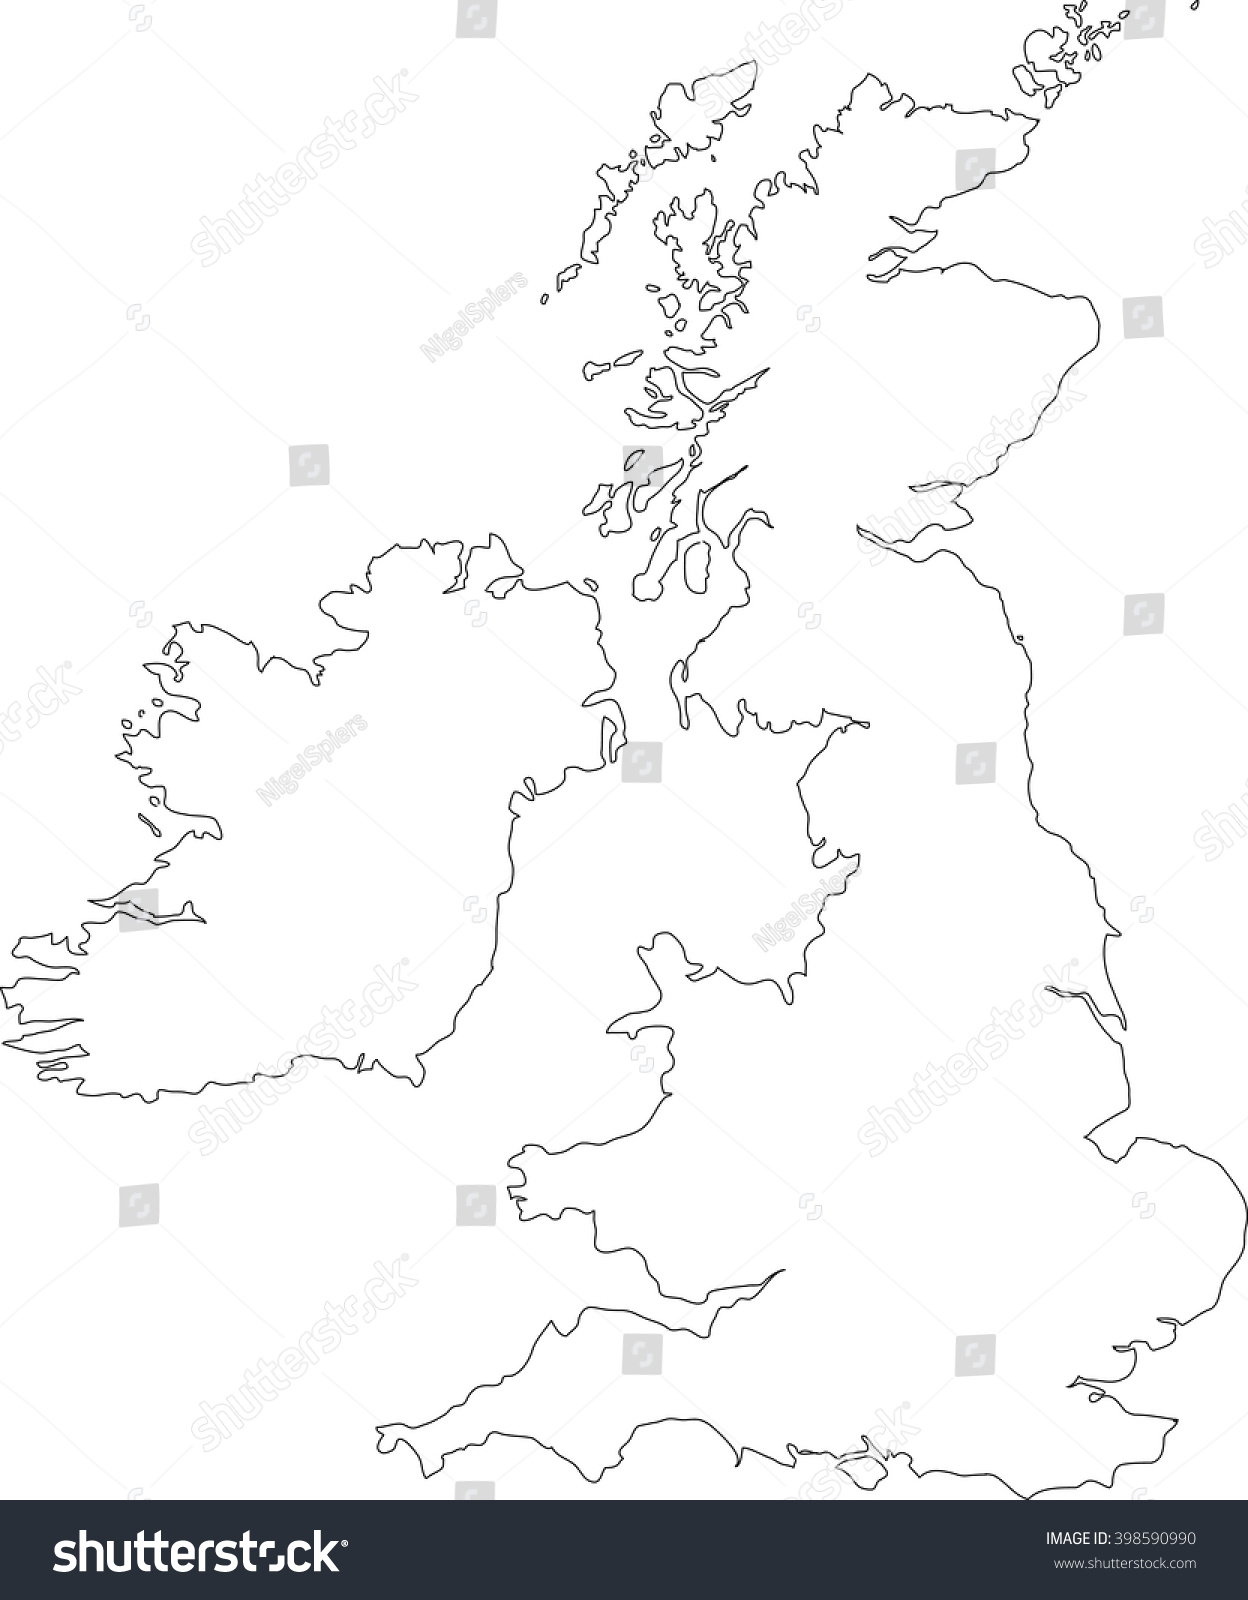 Black Outline Vector Map British Isles Stock Vector ...